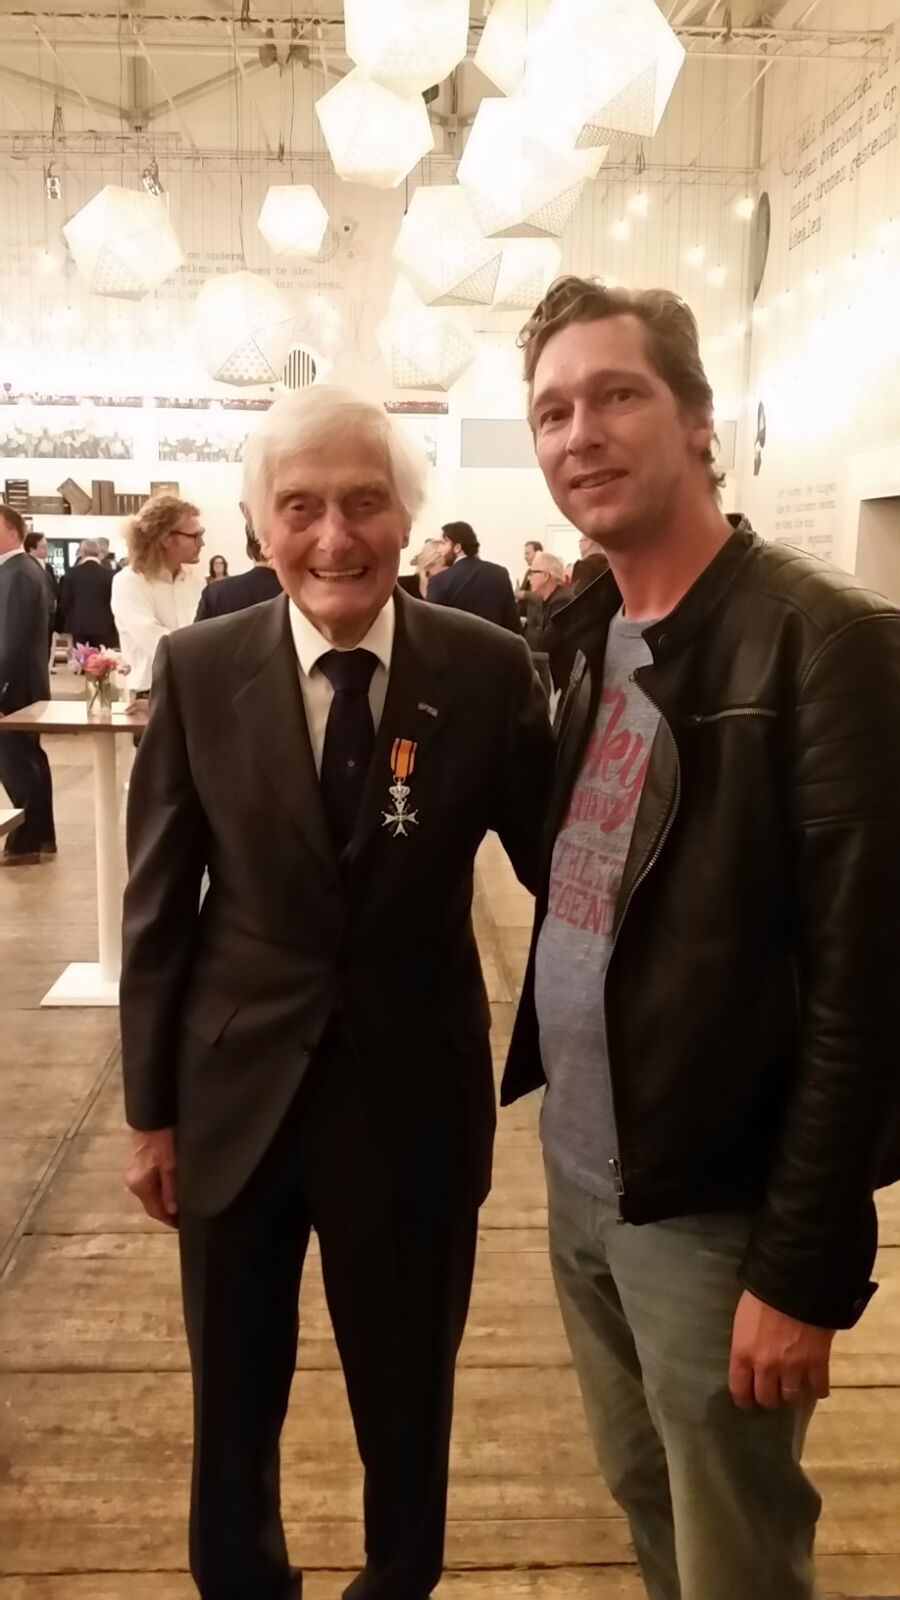 Met Kenneth Mayhew. Drager van de militaire Willems-orde en Normandie veteraan.